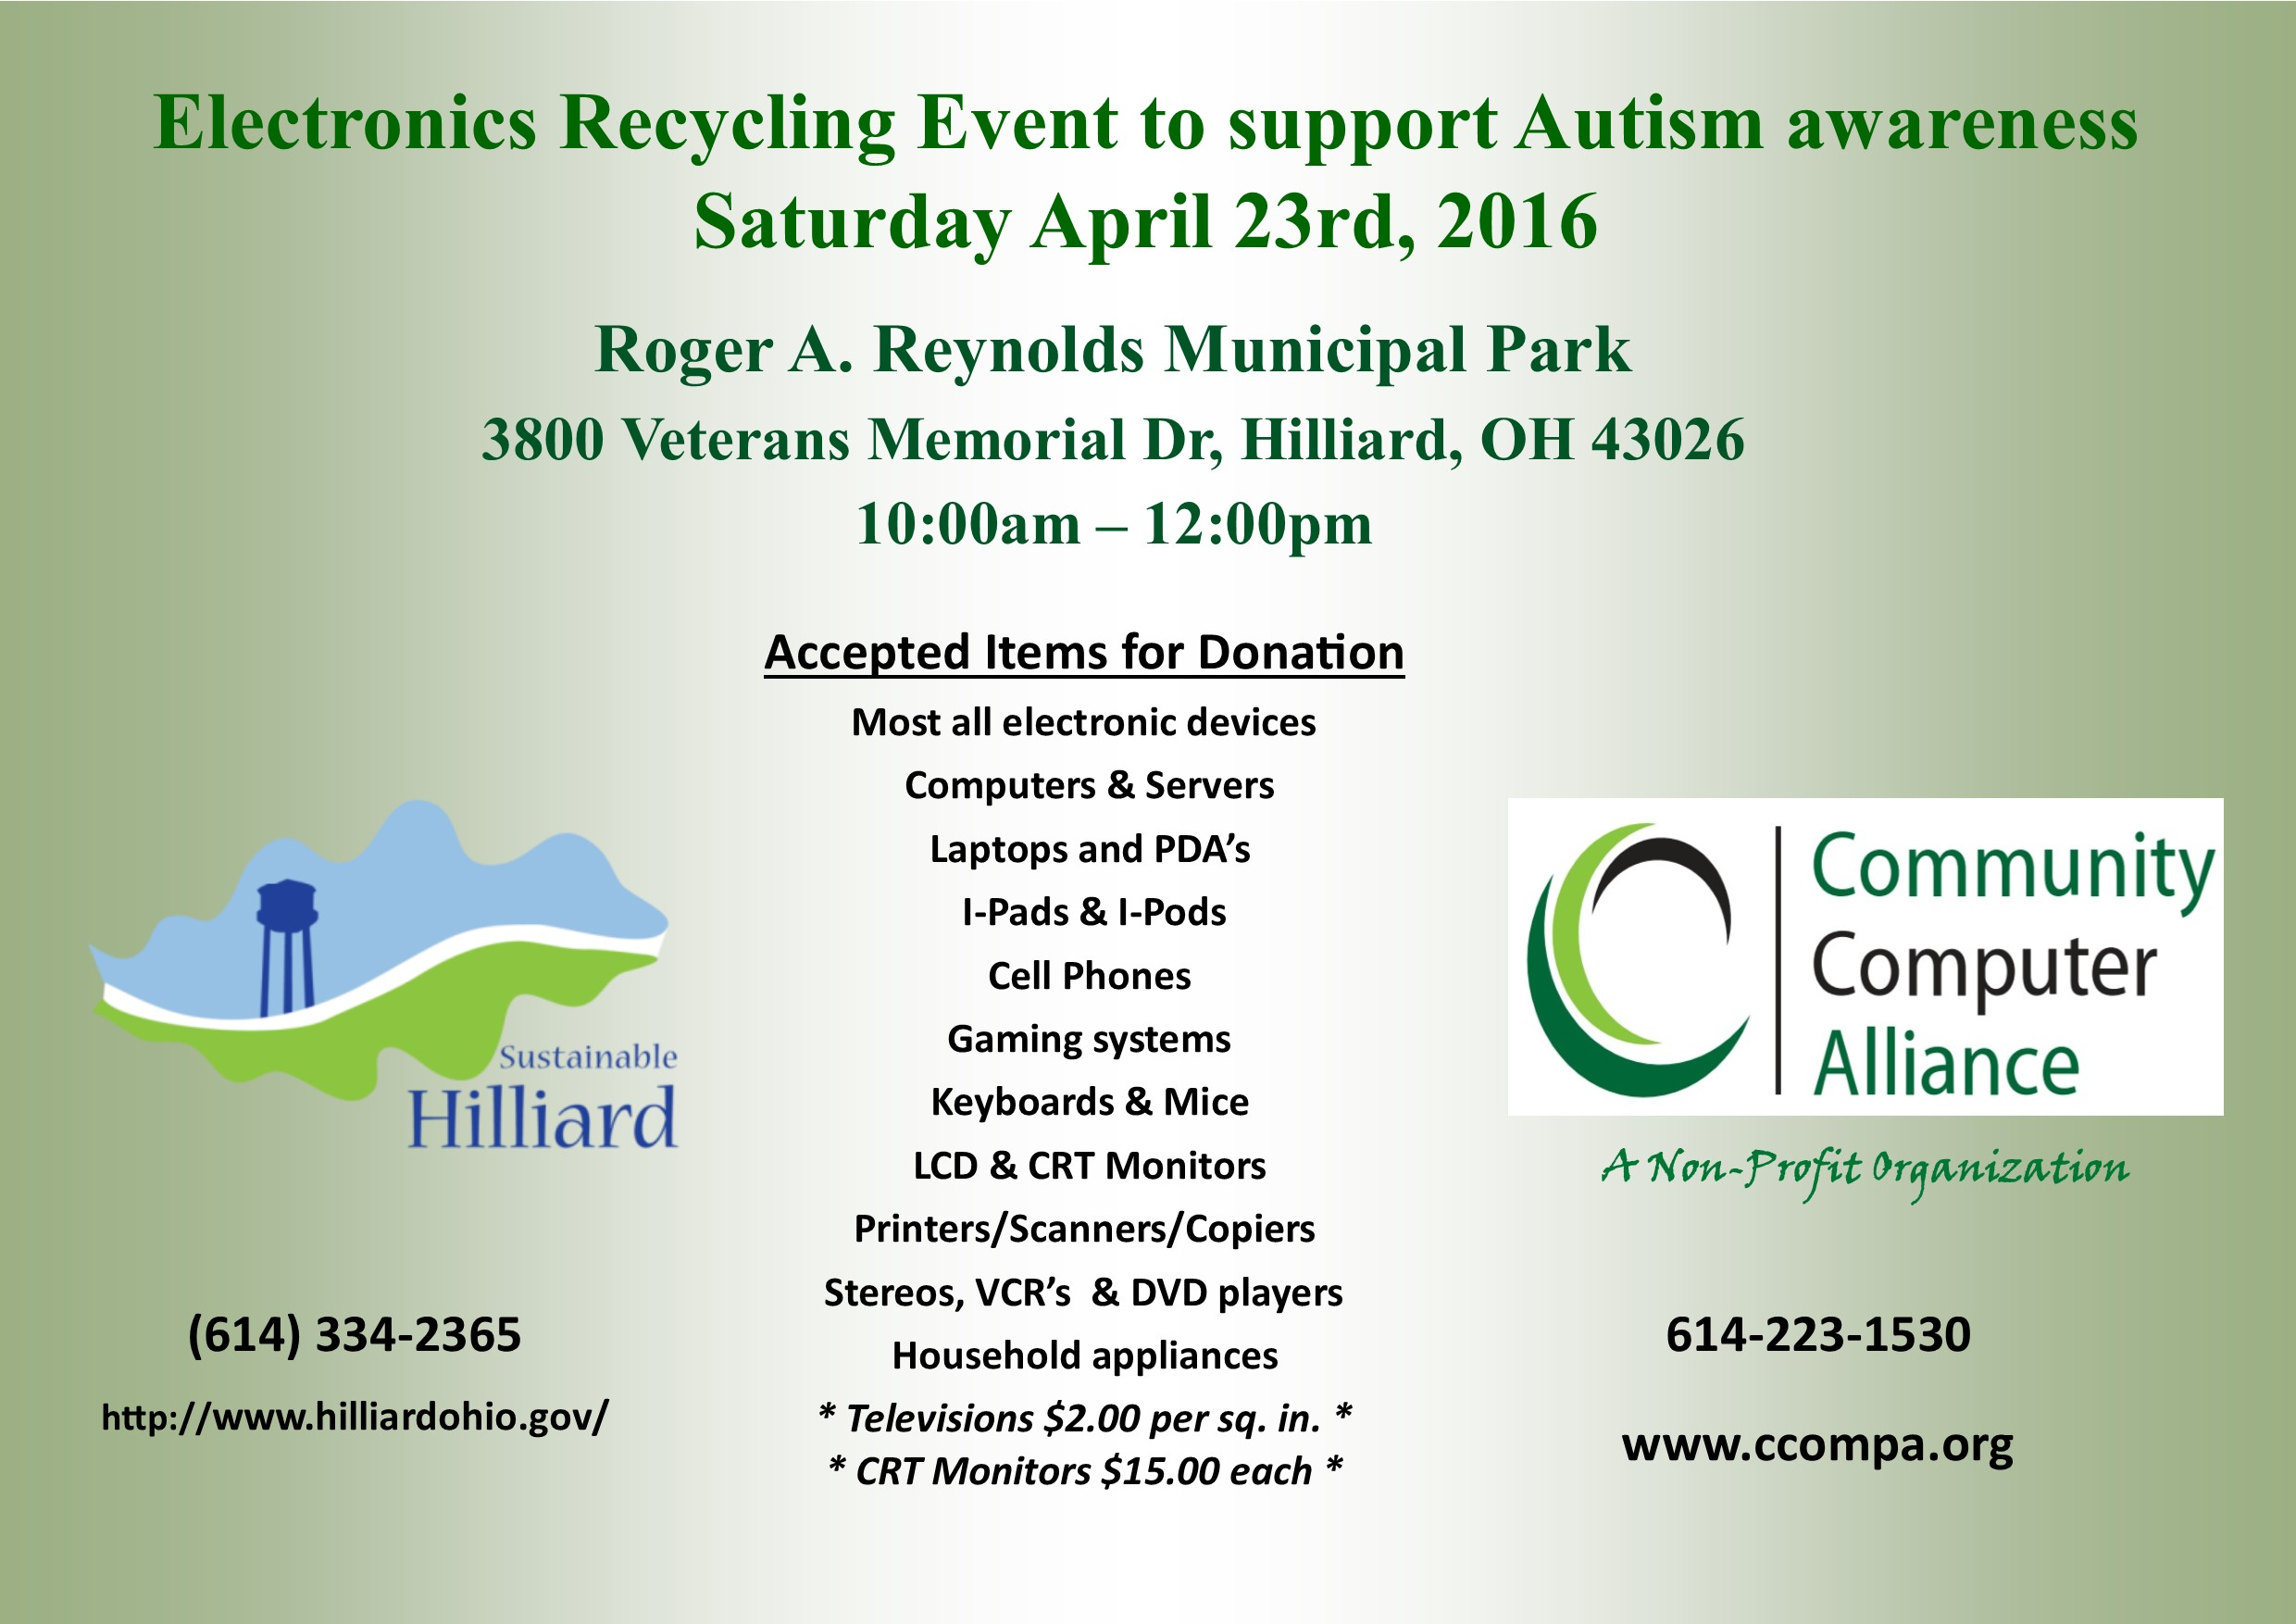 Hilliard Municipal Park Recycling Drive Flyer 2016